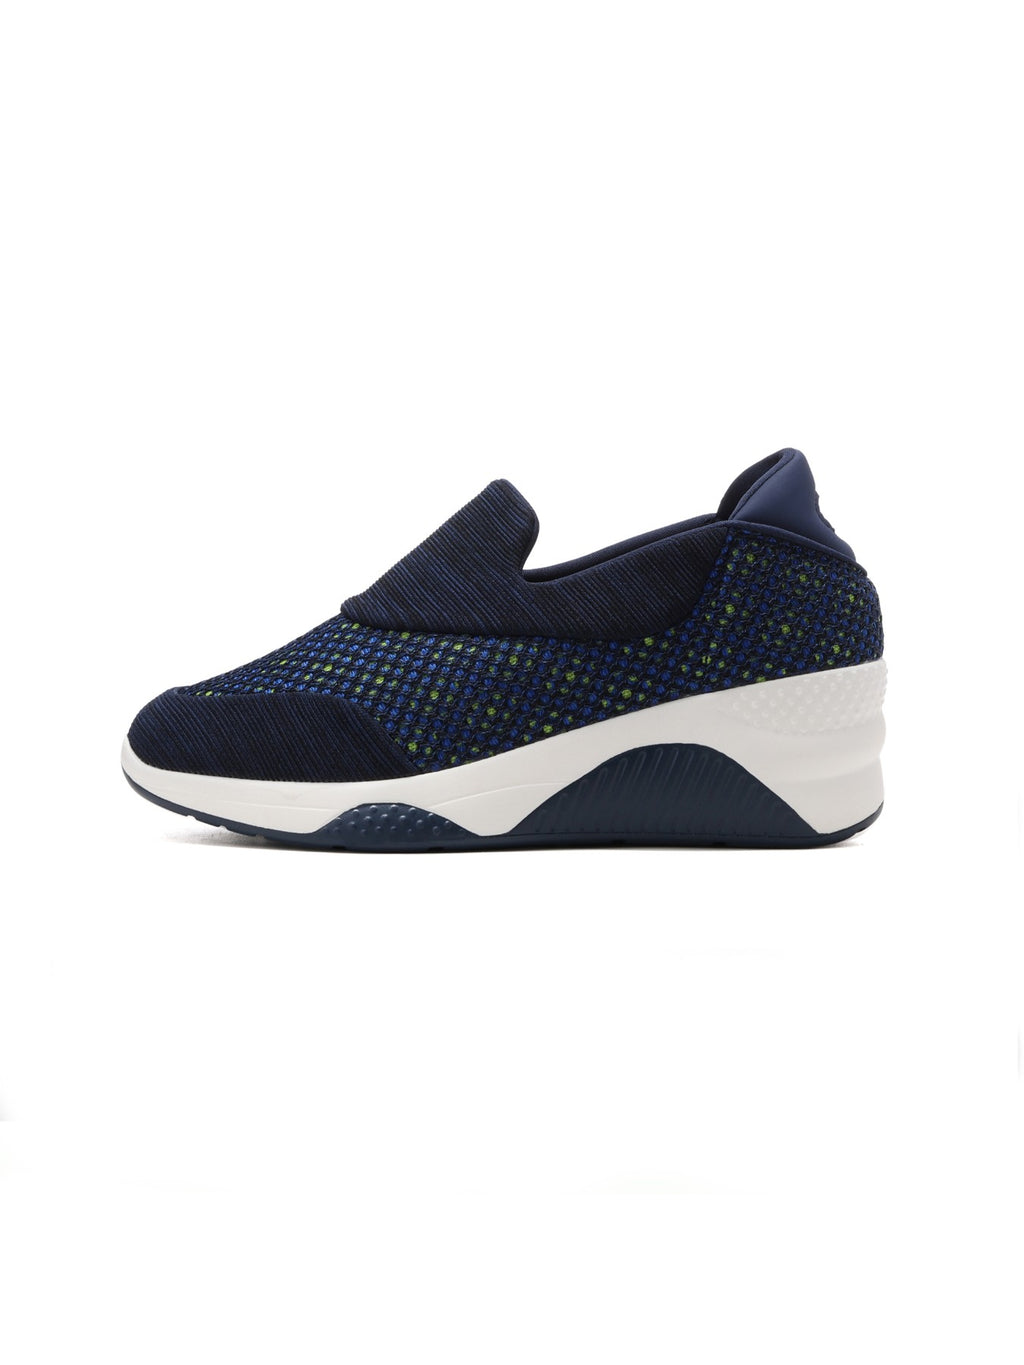 Larrie Navy Stylish Cushioned Sporty Sneakers